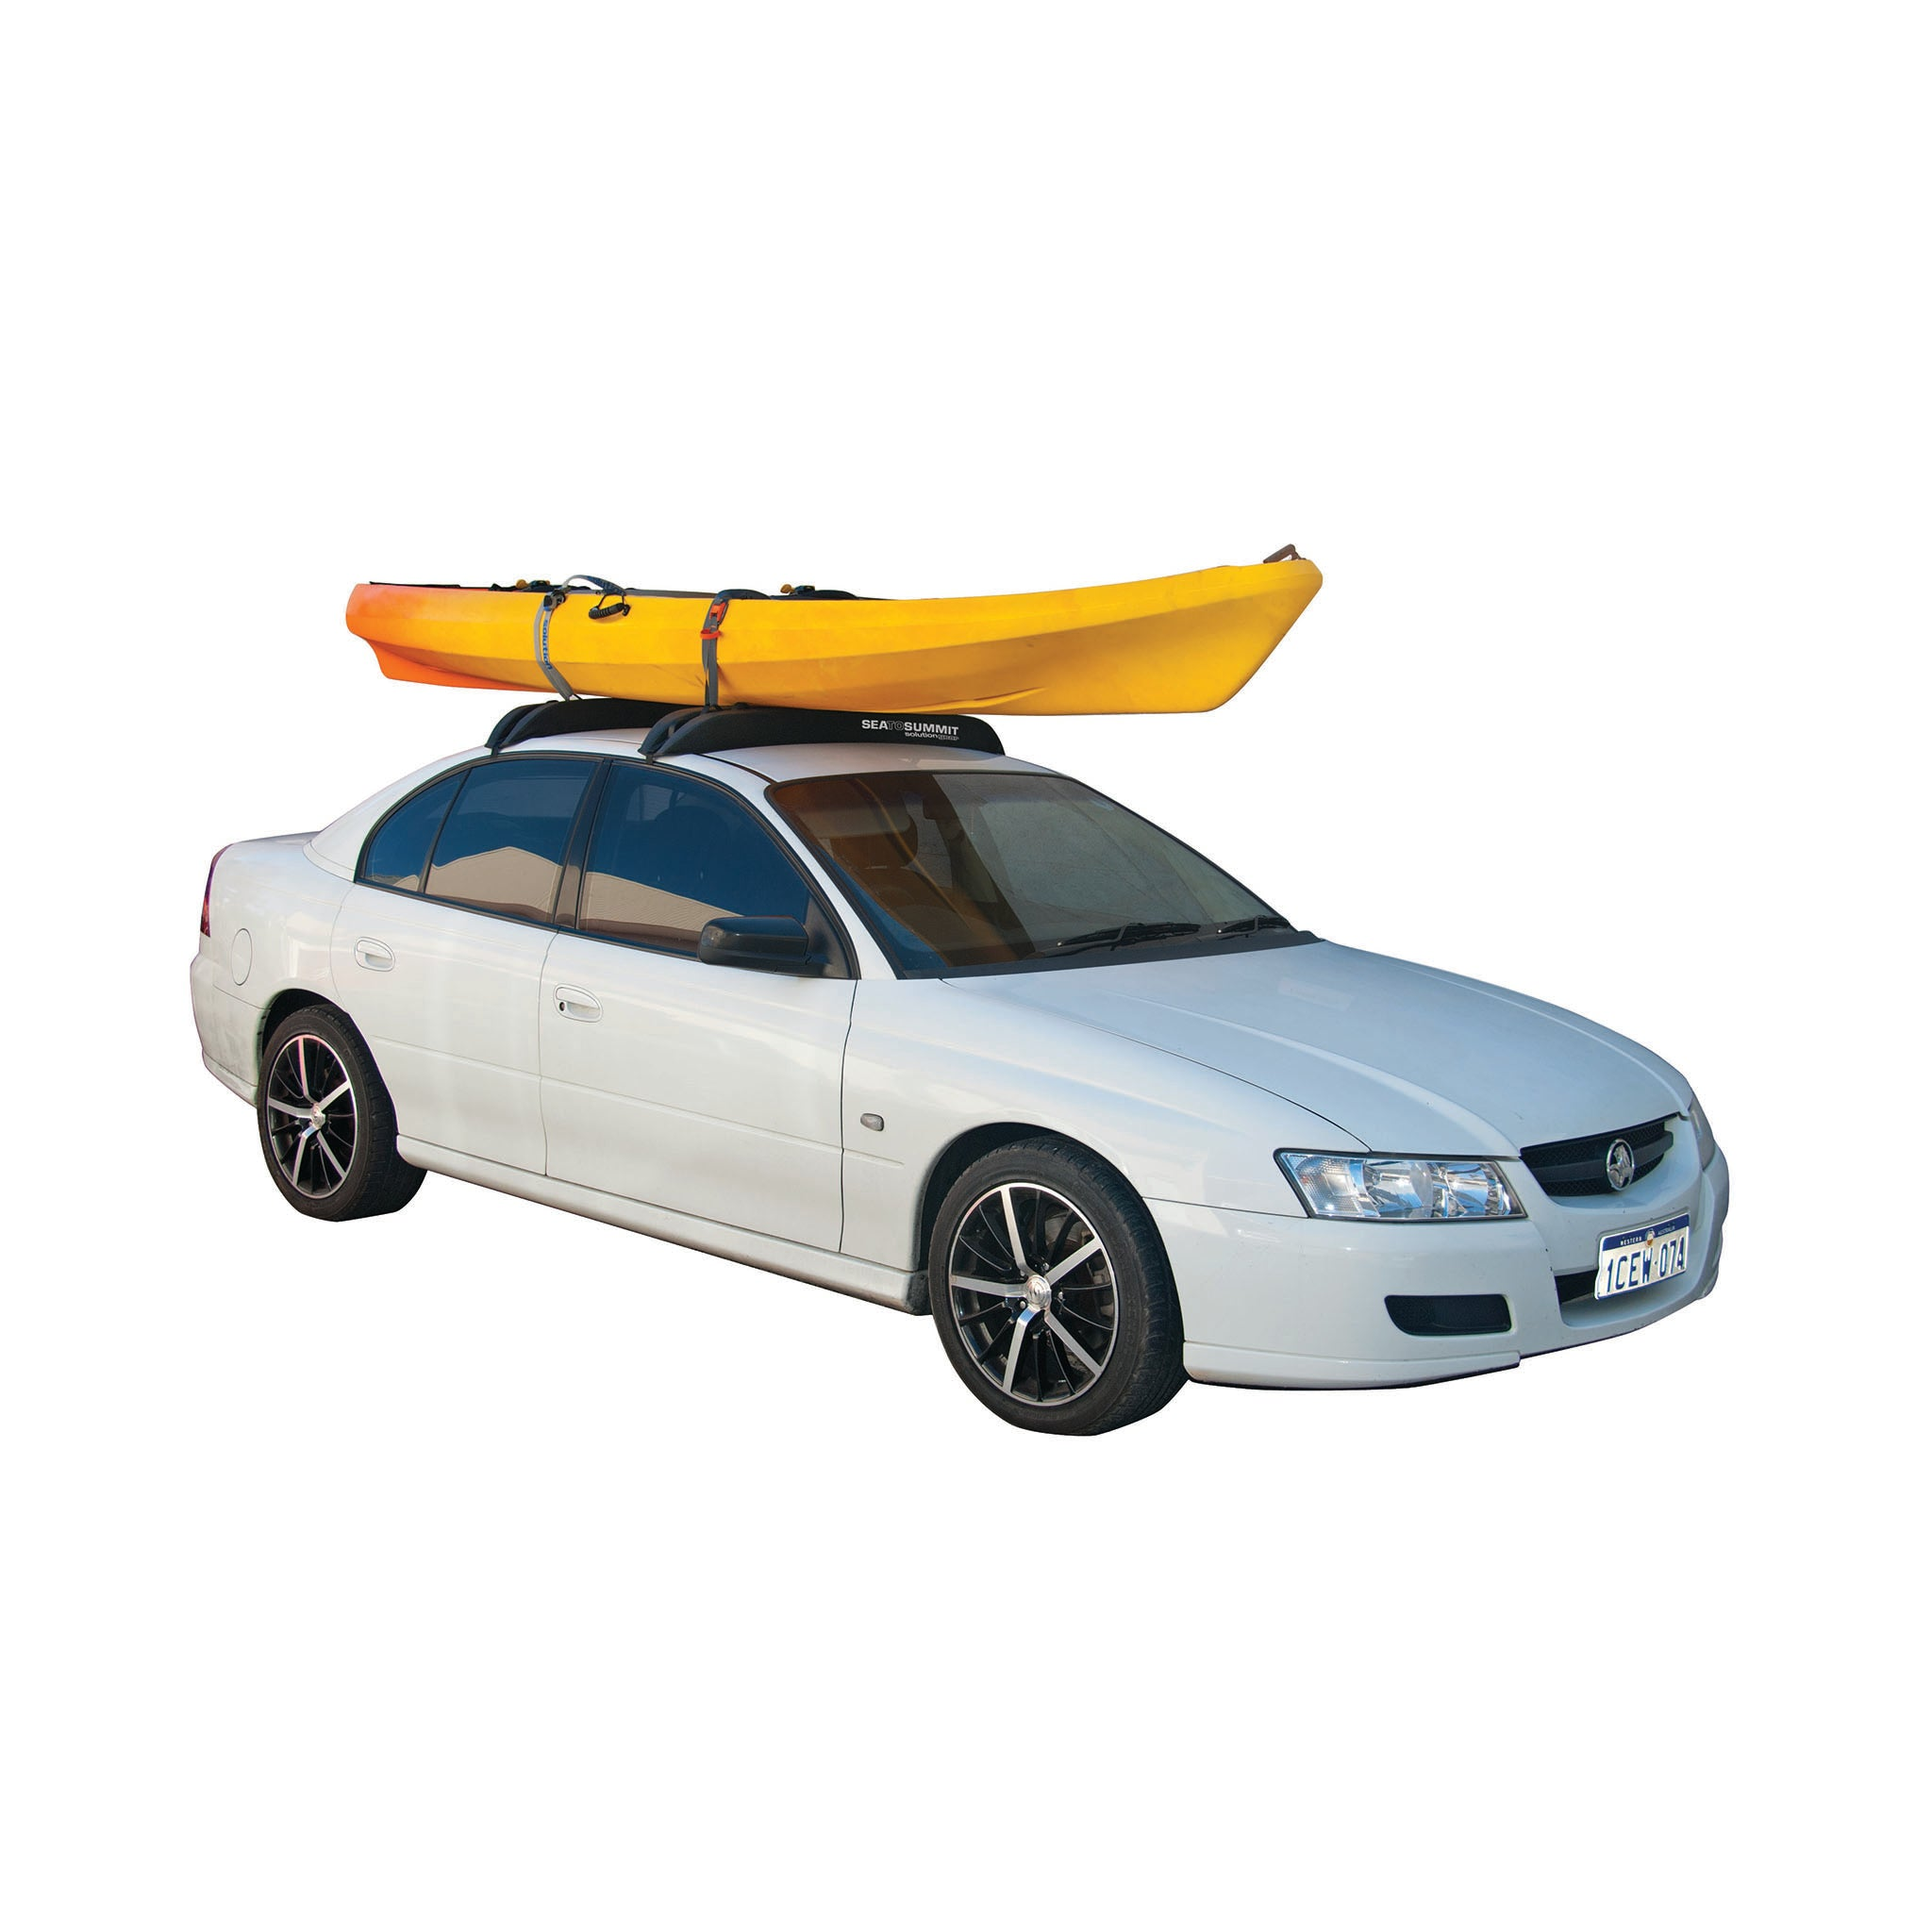 Kayak, Canoe, SUP Board and Surfboard _ car rack